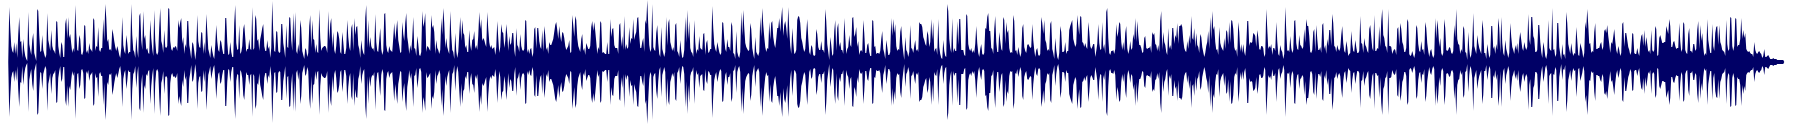 waveform of track #68066